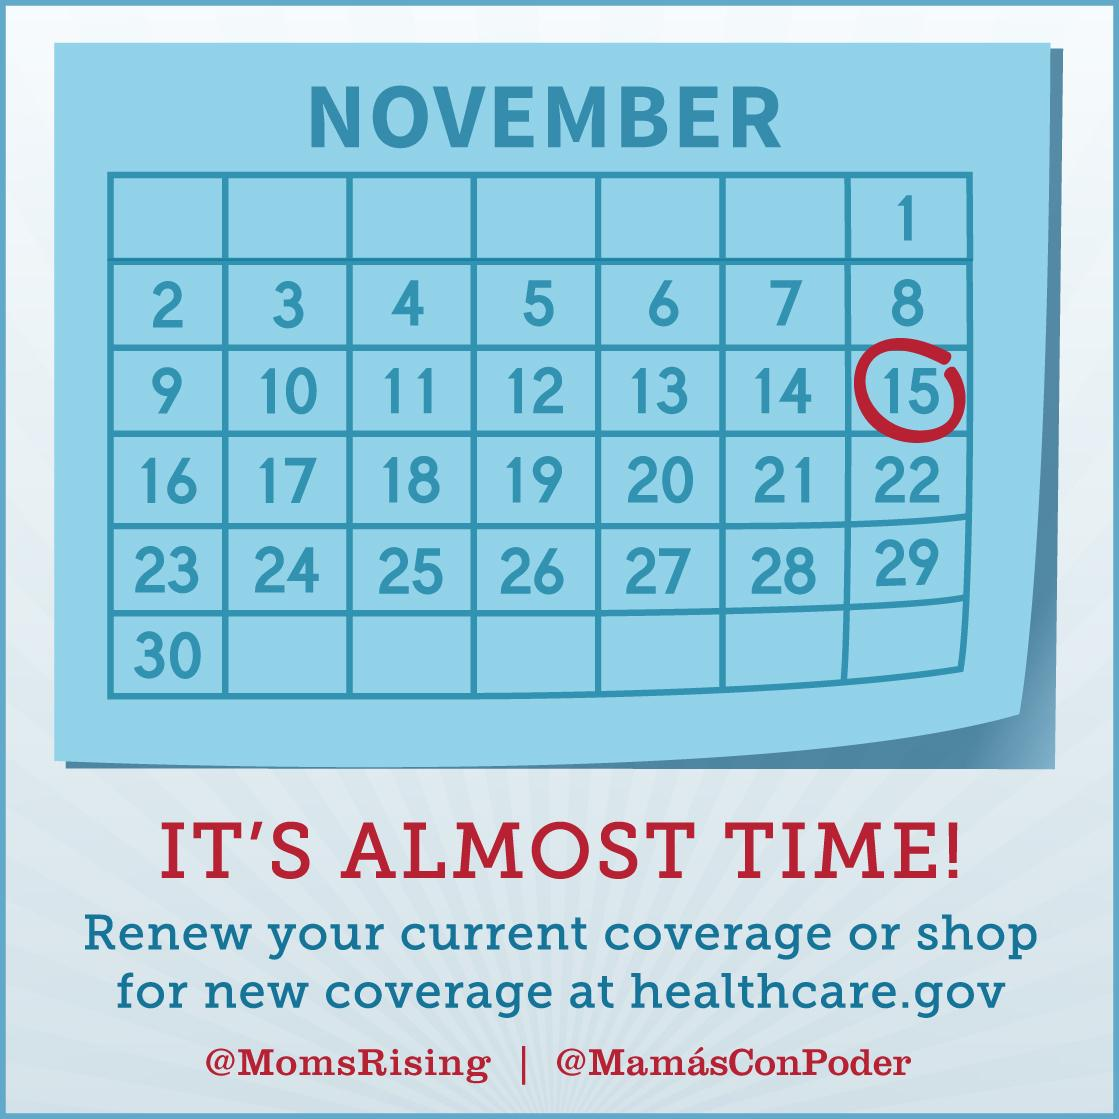 Only 5 days until open enrollment! Visit http://t.co/uxiaUfemxp to #StayCovered or #Getcovered! #MillennialMon http://t.co/TDEwrkCCb1